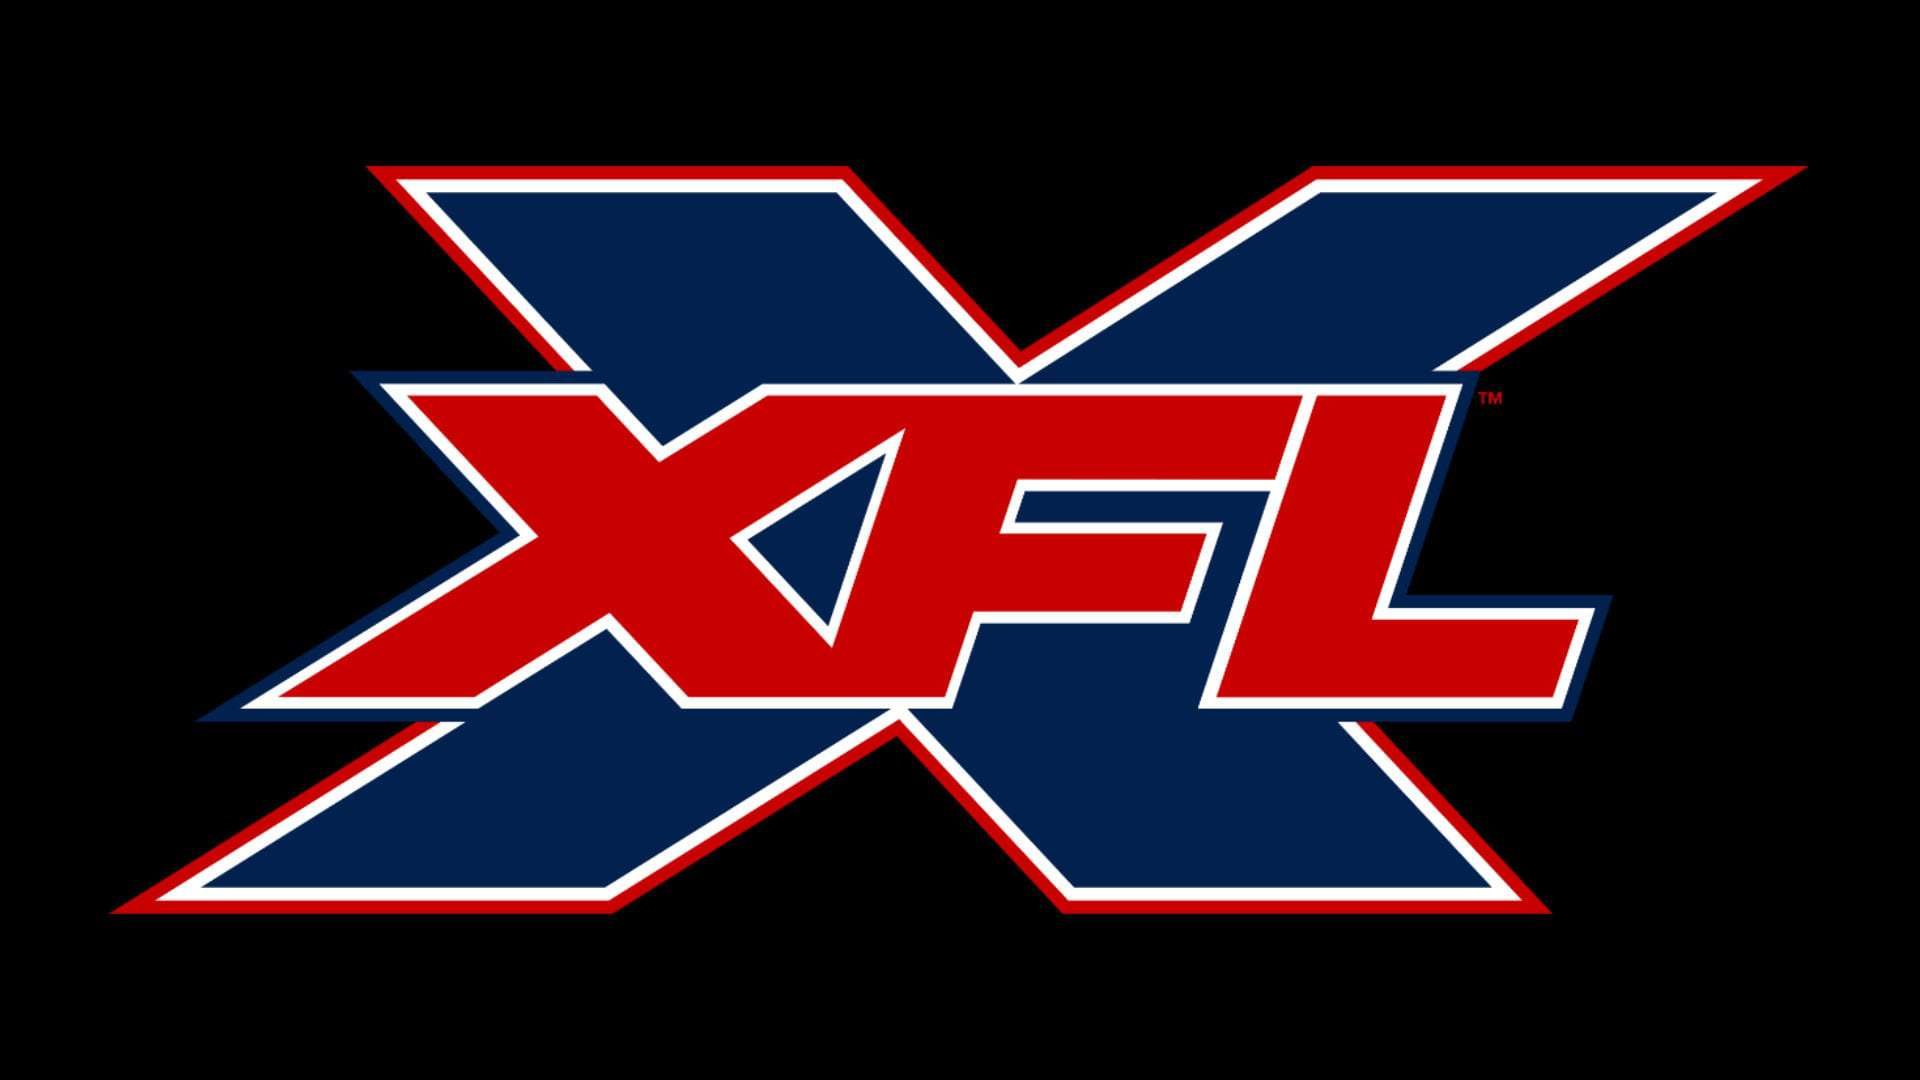 XFL 2 Round Fantasy Football Mock Draft, XFL 2020 DFS Week 1 DraftKings Recommendations